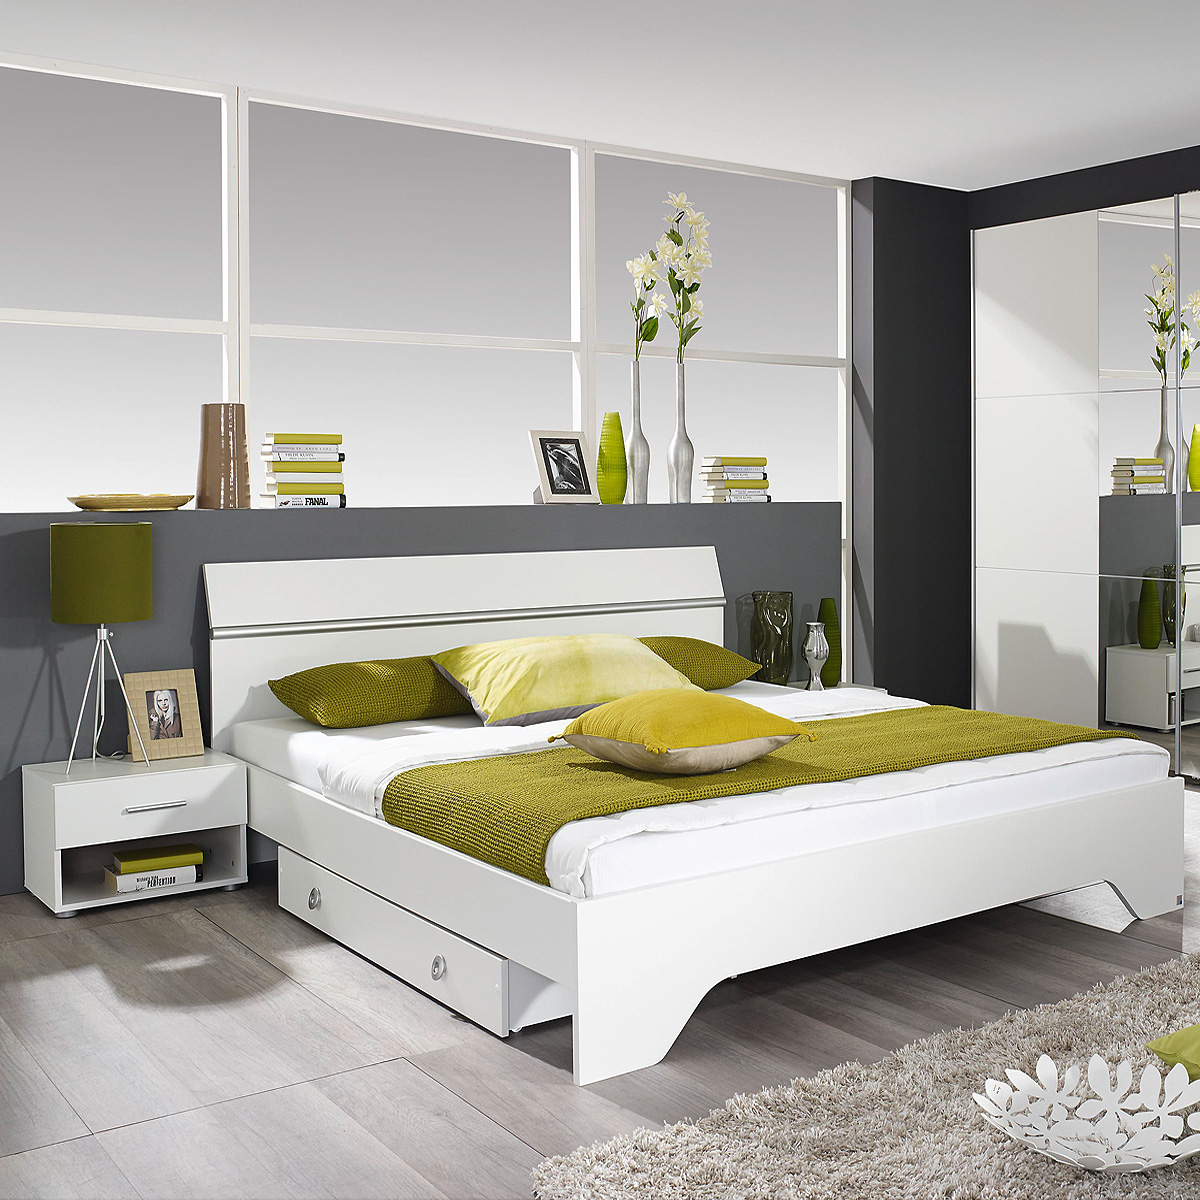 bettanlage fellbach bett nako schlafzimmerkombi. Black Bedroom Furniture Sets. Home Design Ideas